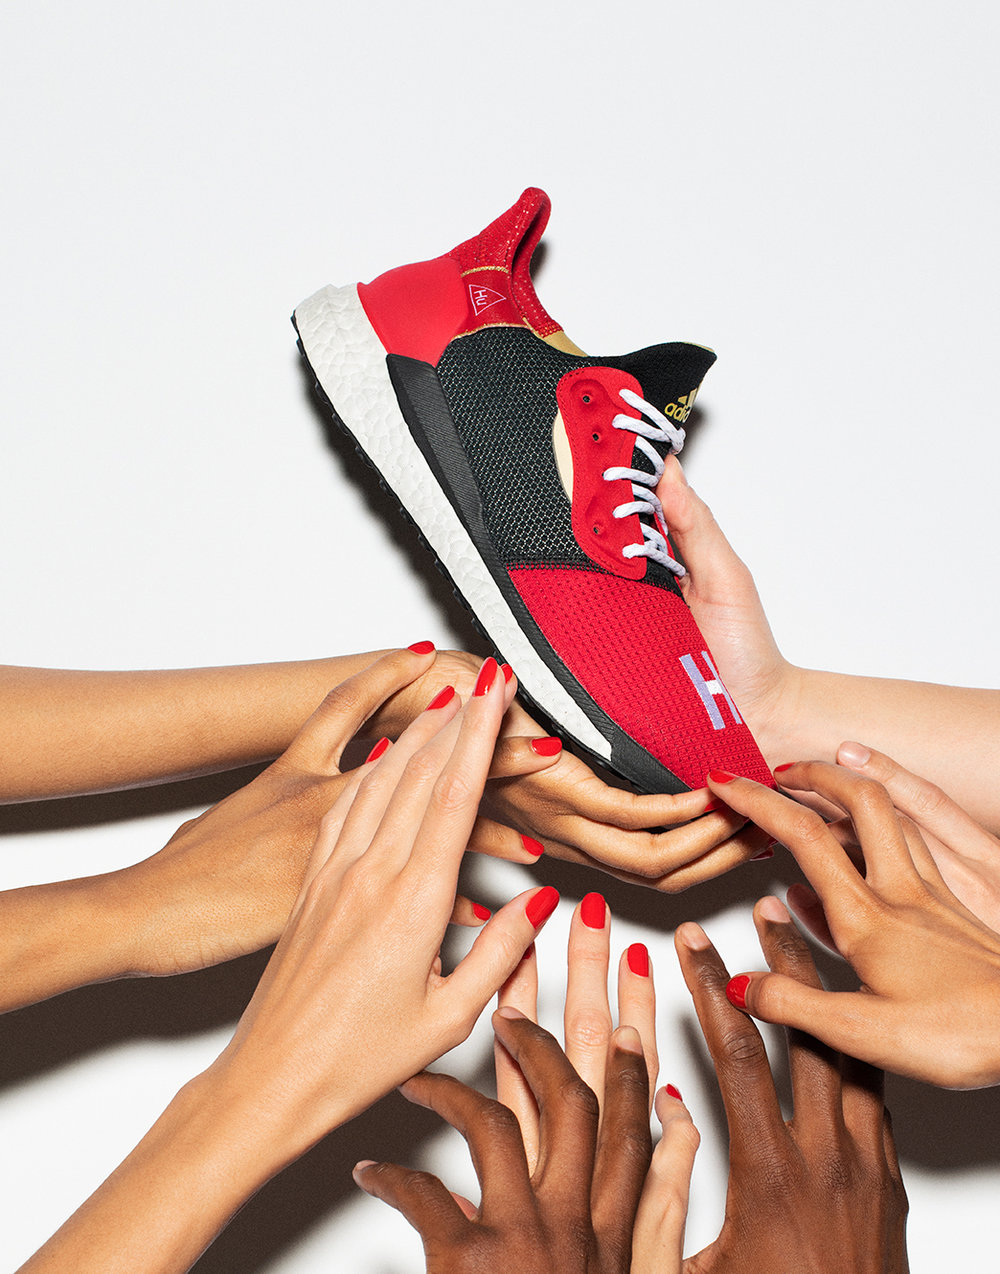 crop_03_ADIDAS PHARRELL DIGITAL CAMPAIGN_GRC_19003_ADIDAS_PW_SHOT_06_063_v3_ext_QC.jpg